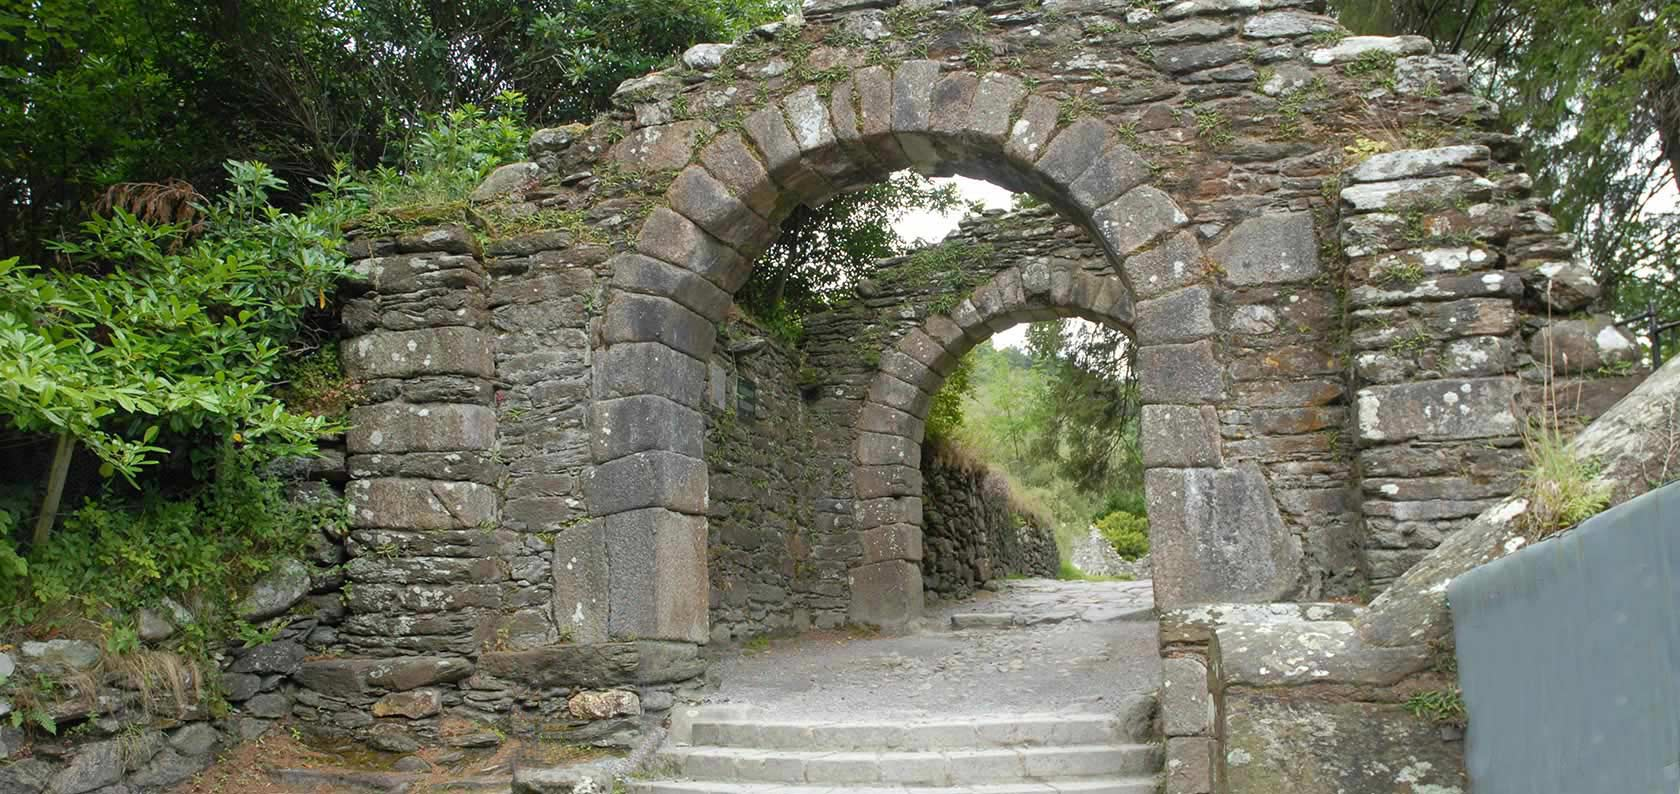 Stone archway over wooded path.